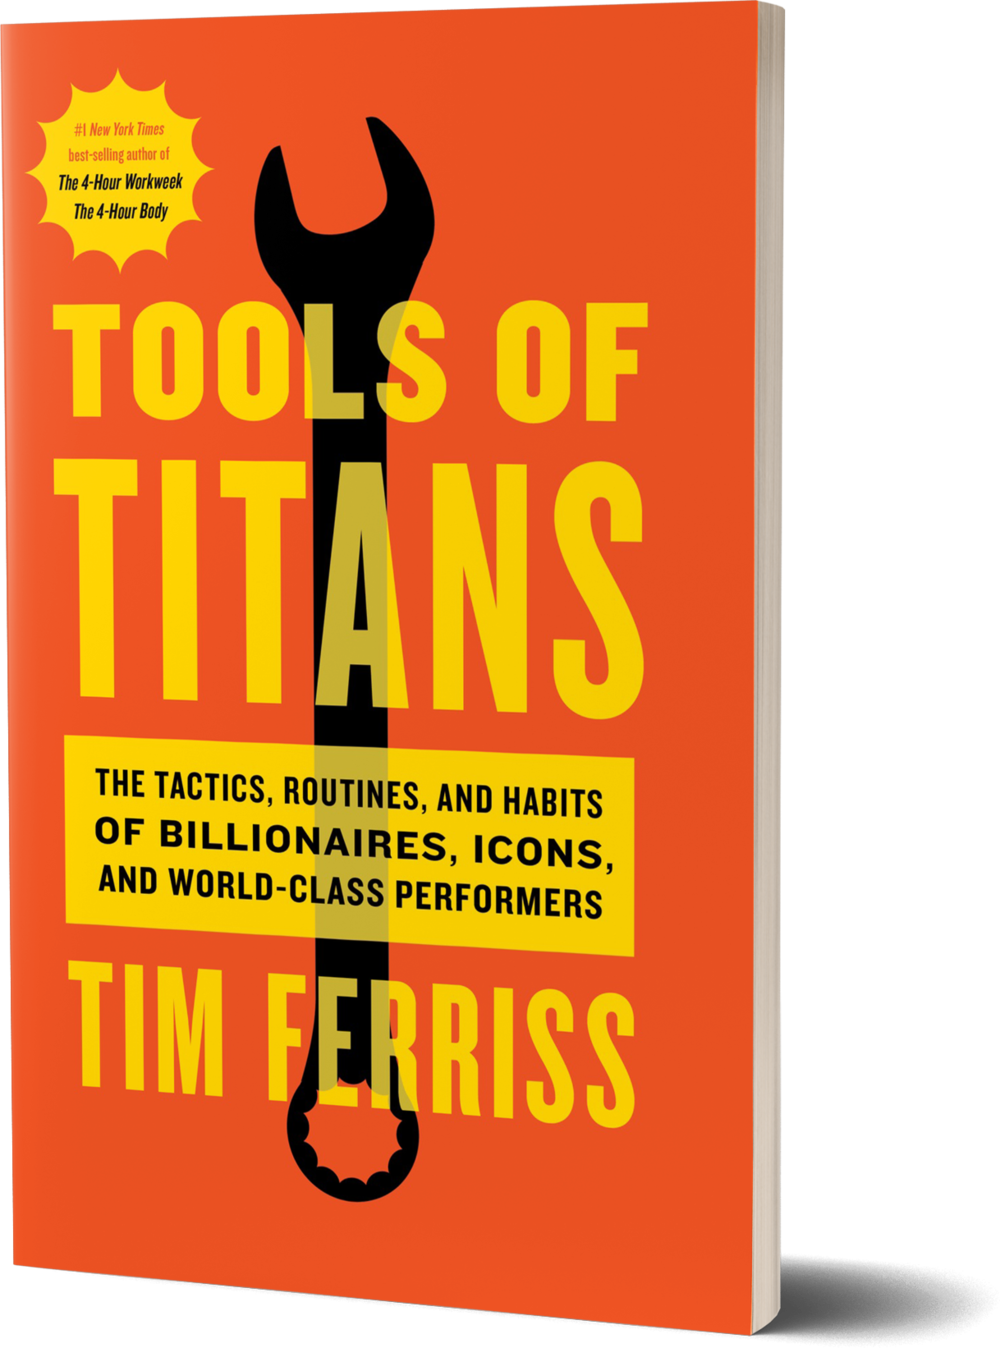 Tools of Titans: The Tactics, Routines, and Habits of Billionaires, Icons, and World-Class Performers^by Time Ferris